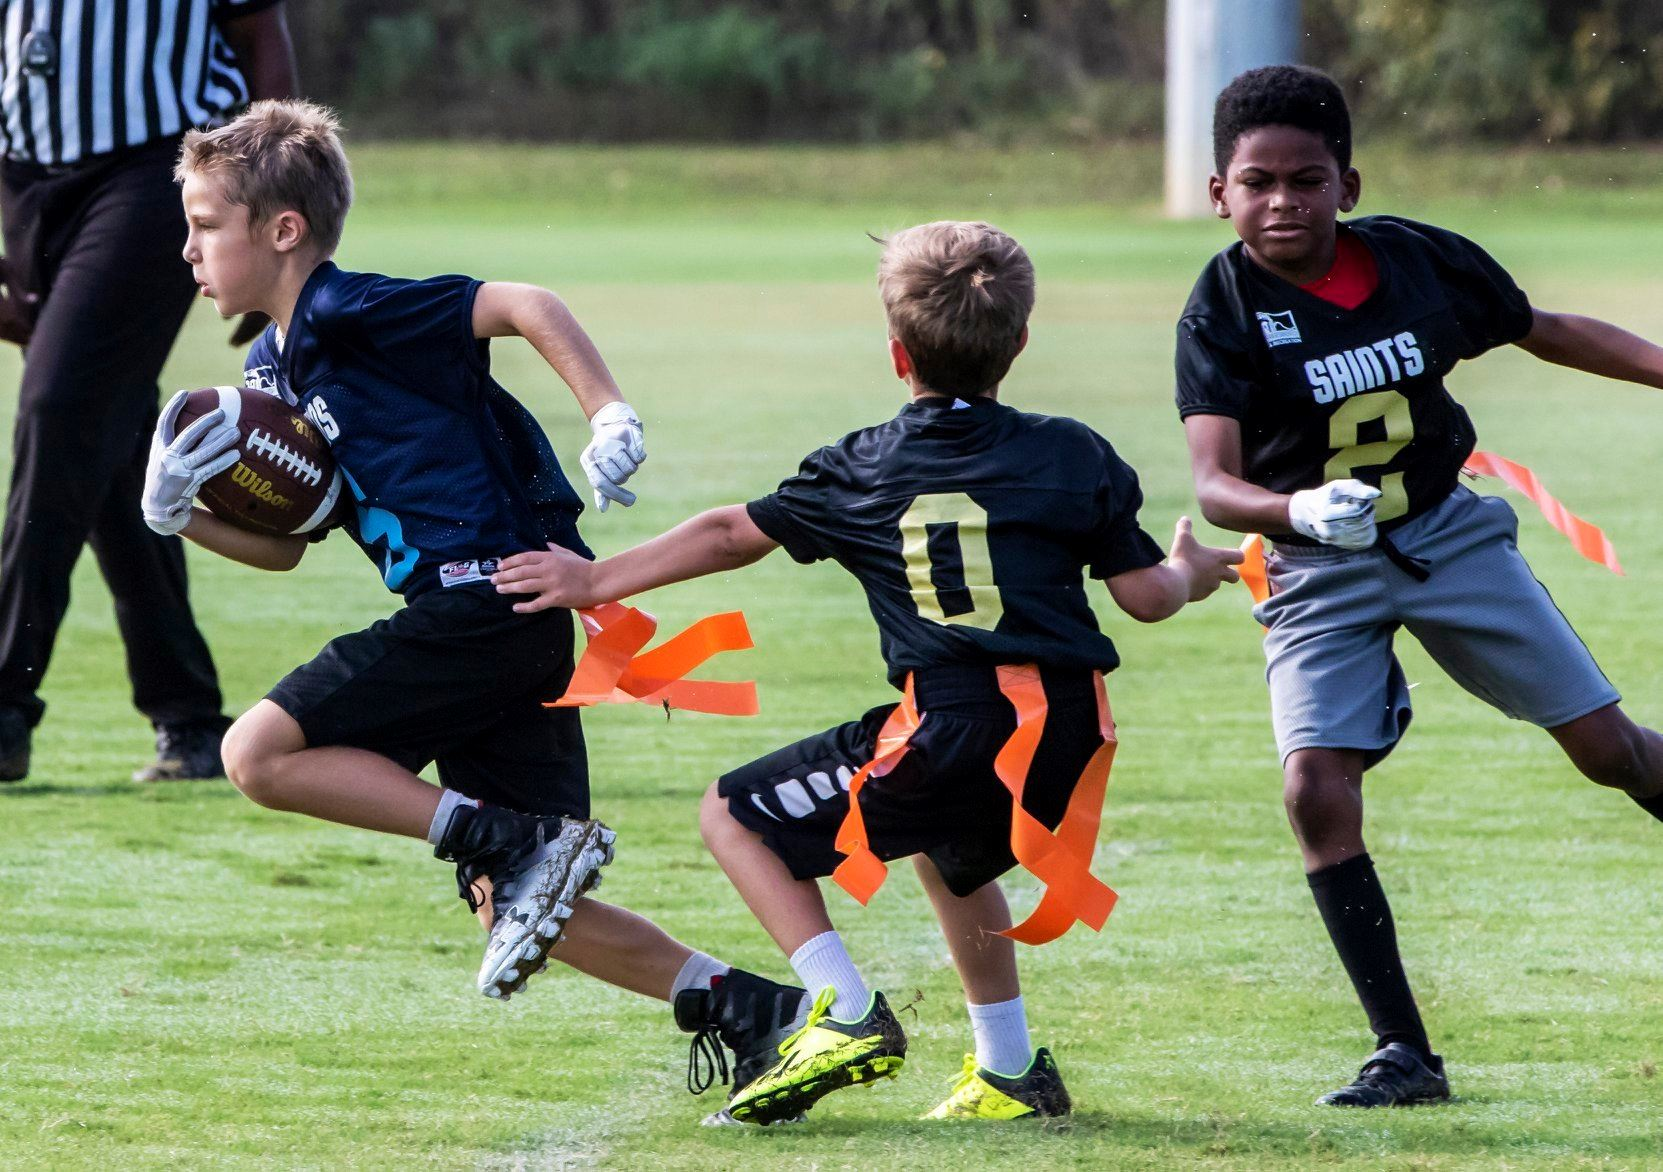 Murfreesboro Flag Football